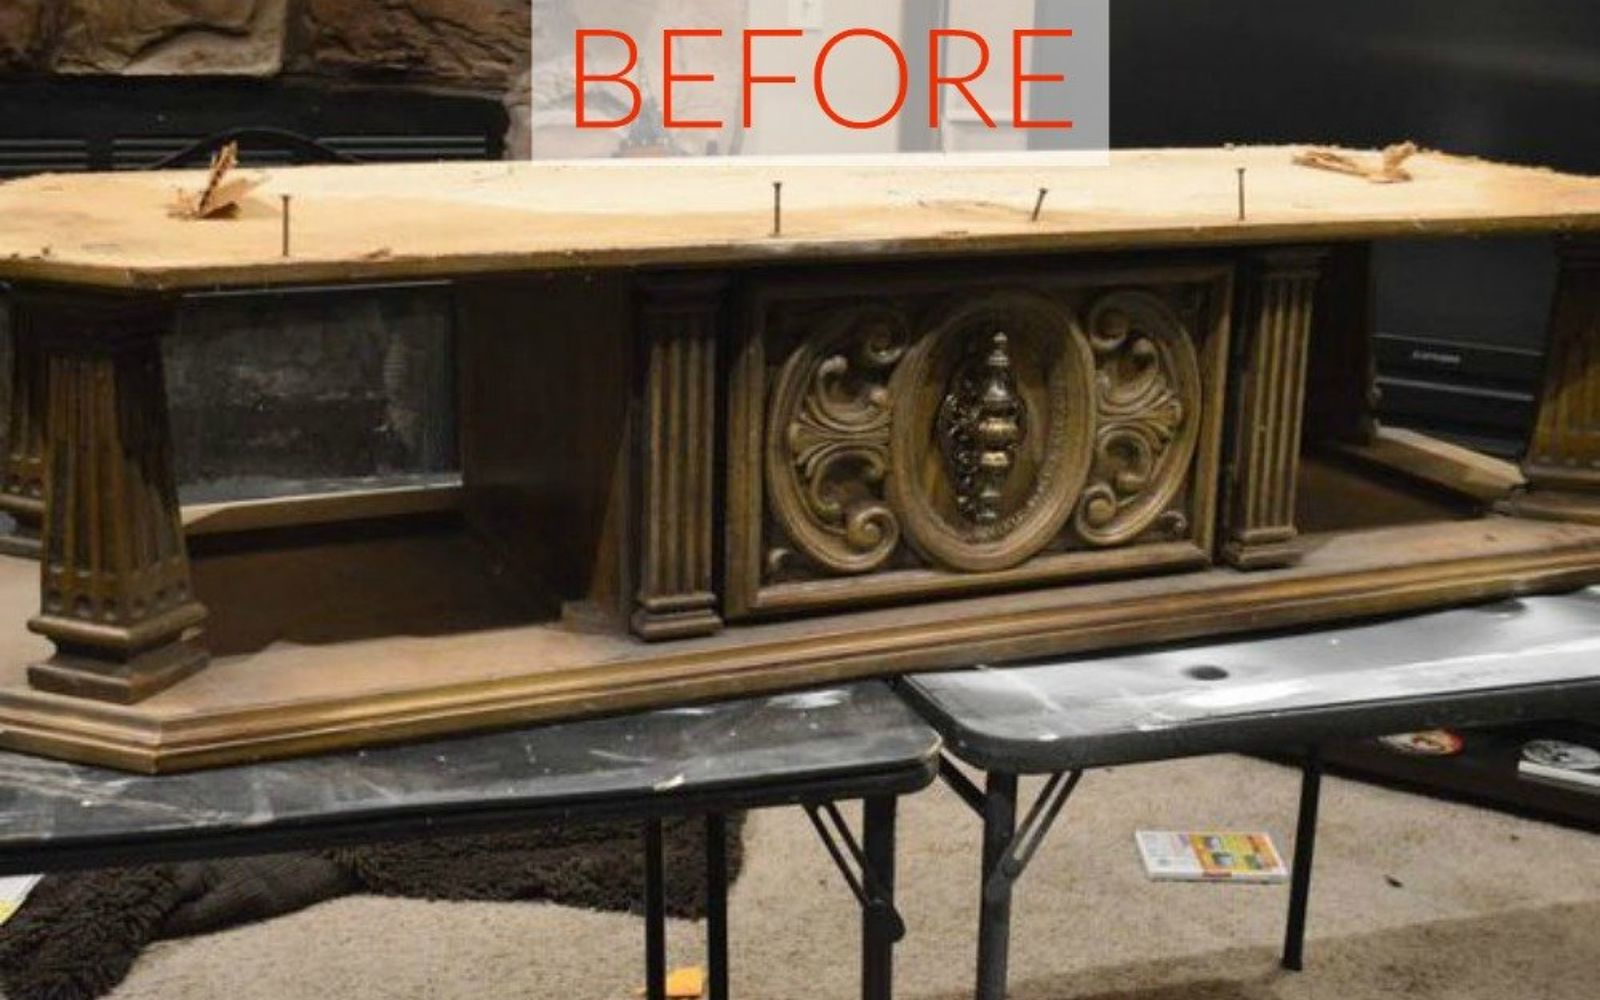 s 10 surprising ways to turn old furniture into extra seating, painted furniture, Before A huge 70s coffee table